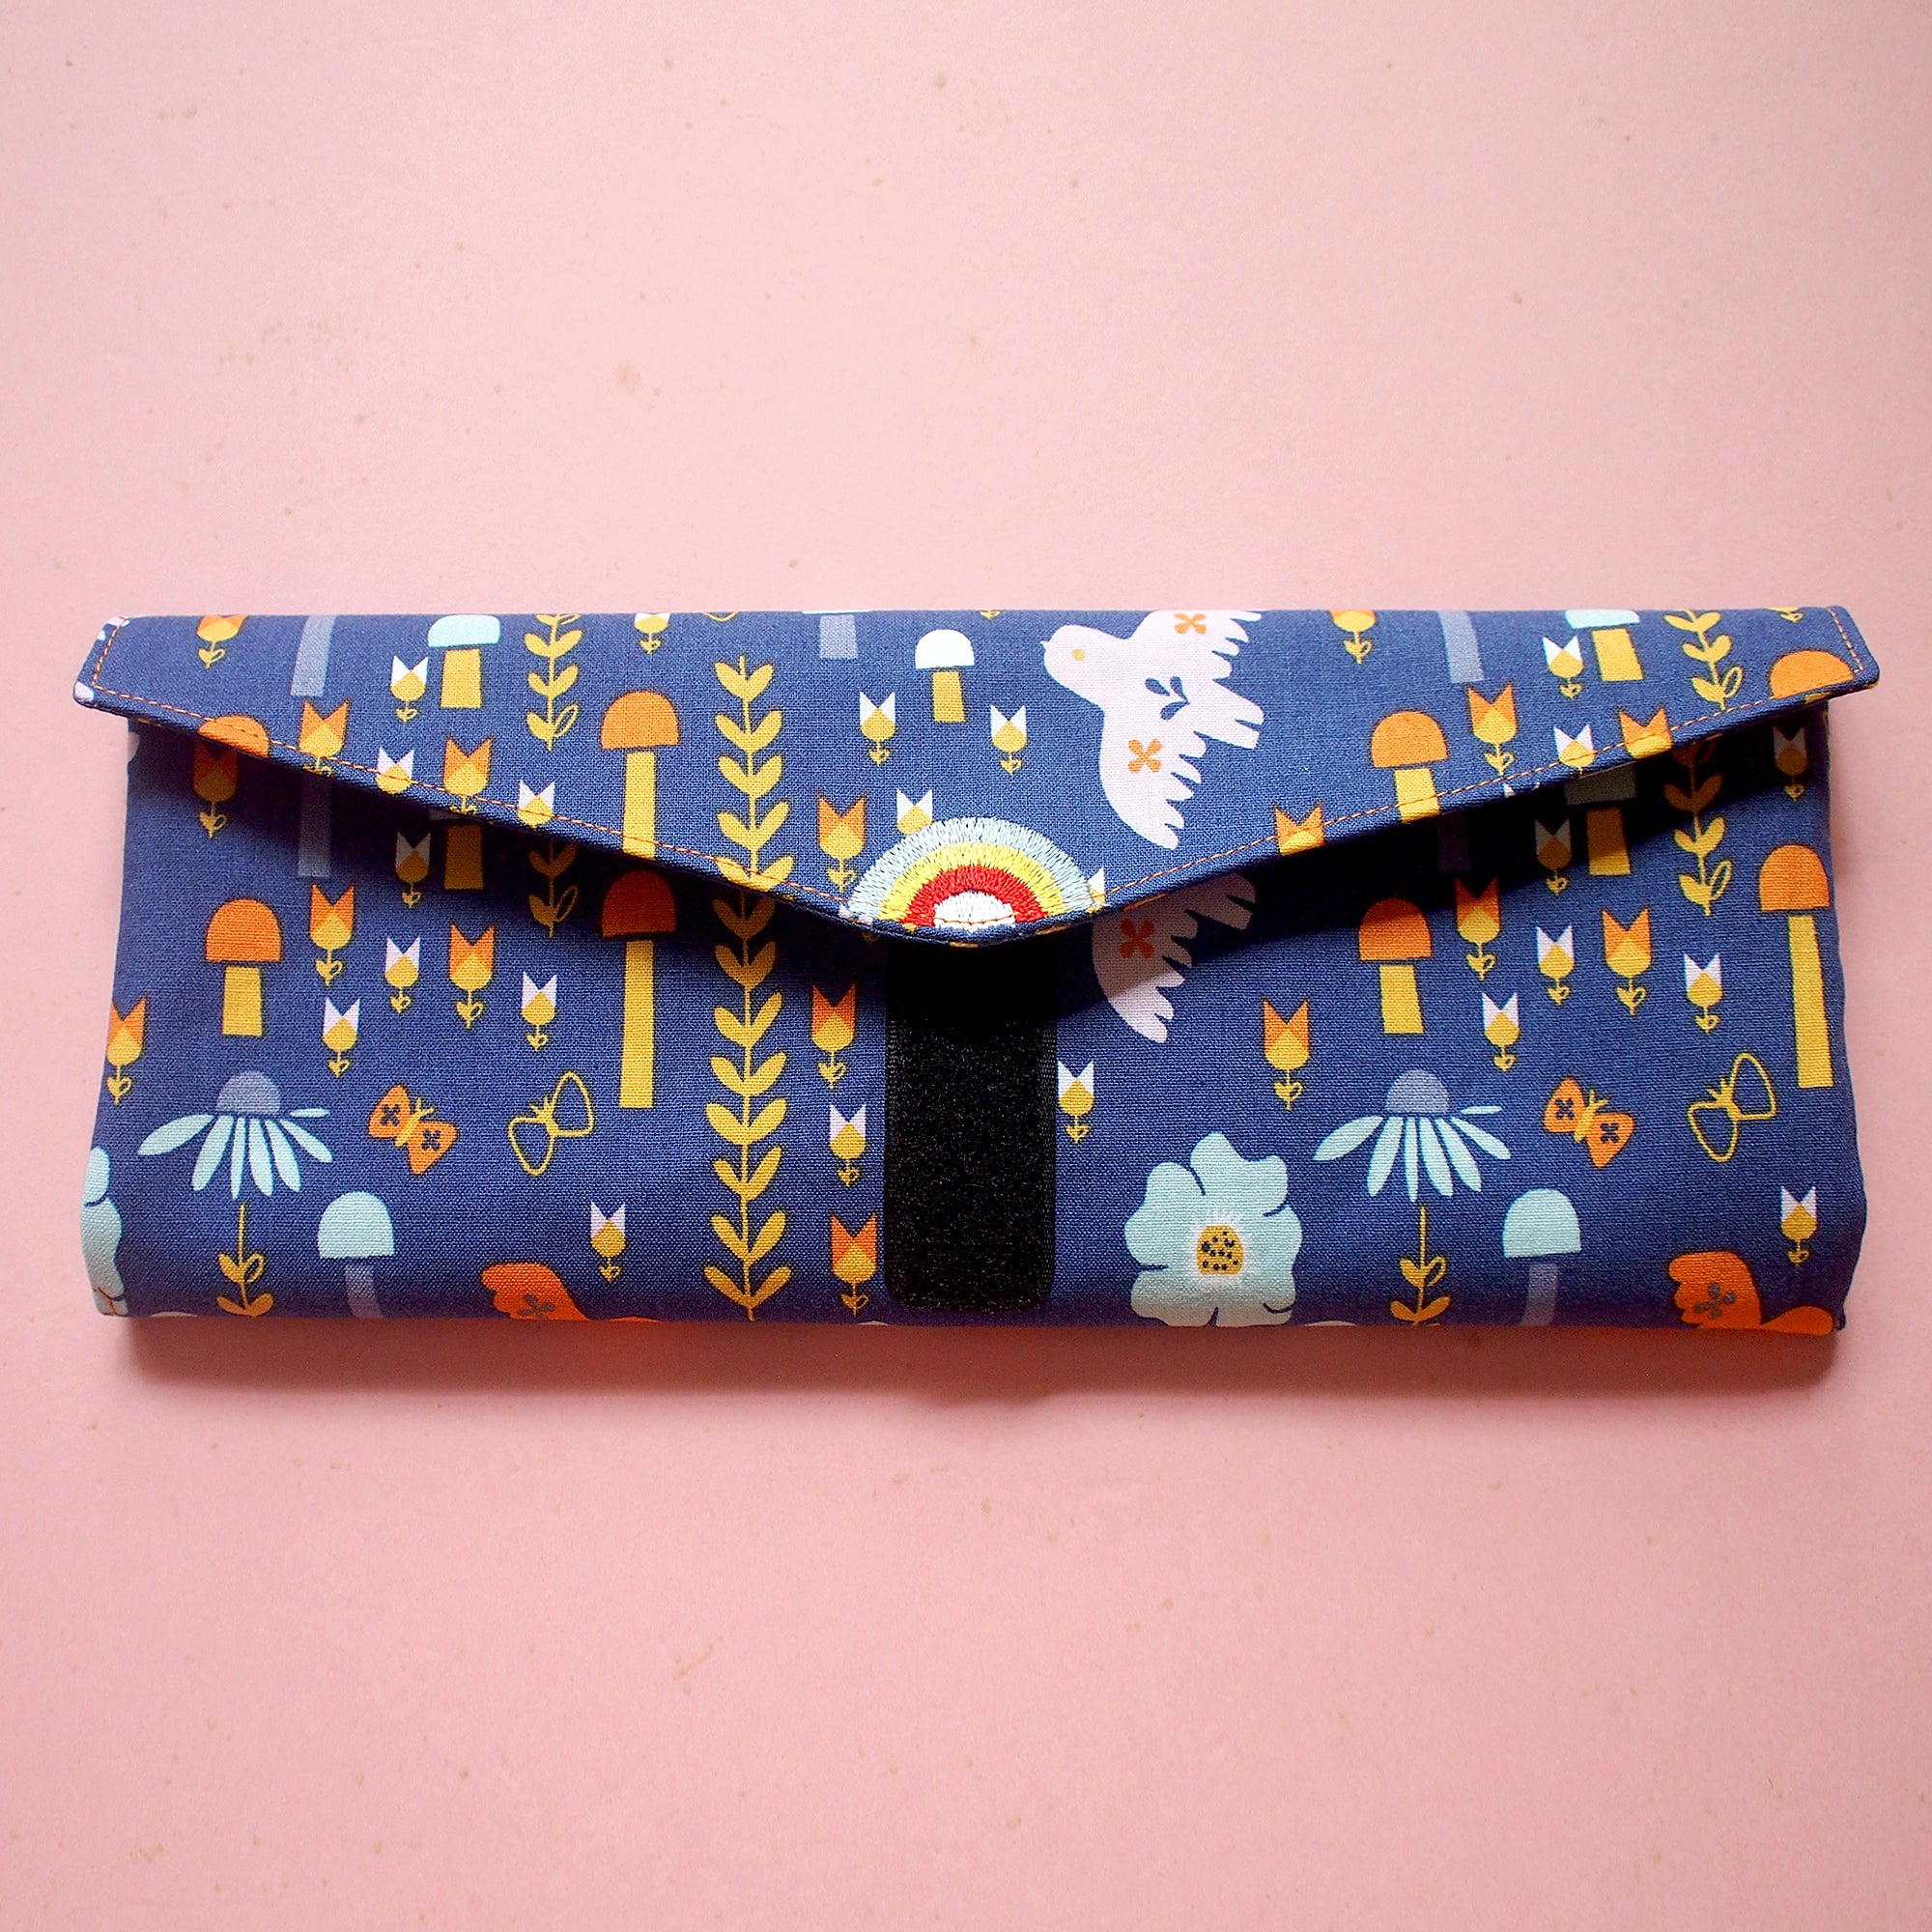 Utensils Pouch (2 Compartments) - Over The Rainbow (Scandinavian Forest)